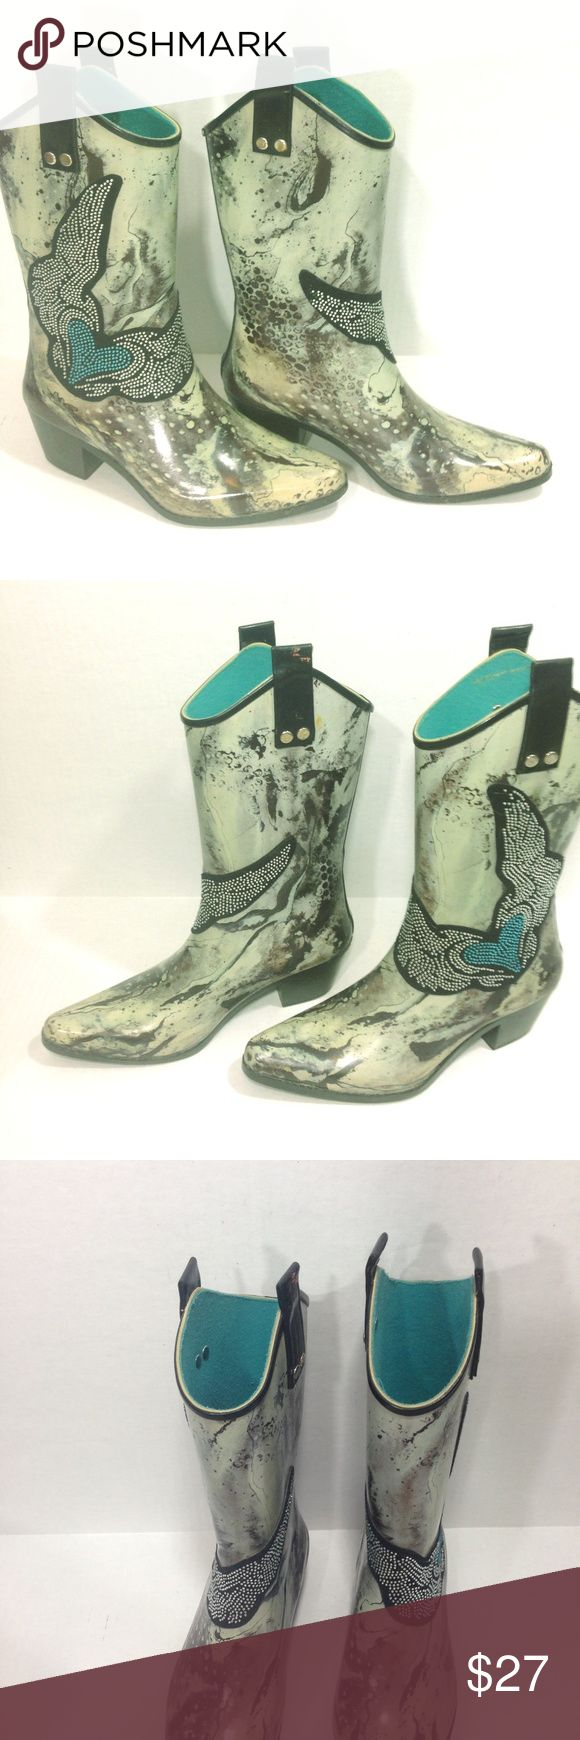 "Beehive Rain Bops Jeweled Winged Heart Rain Boots A pair of blinged out cowboy rain boots up for sale - so cute!  These are Rain Bop rain boots, size 7 embellished with a jeweled, winged heart design on a marbled background, slip on pull tabs on top and a 2"" heel. Beehive Rain Bops Shoes Winter & Rain Boots"